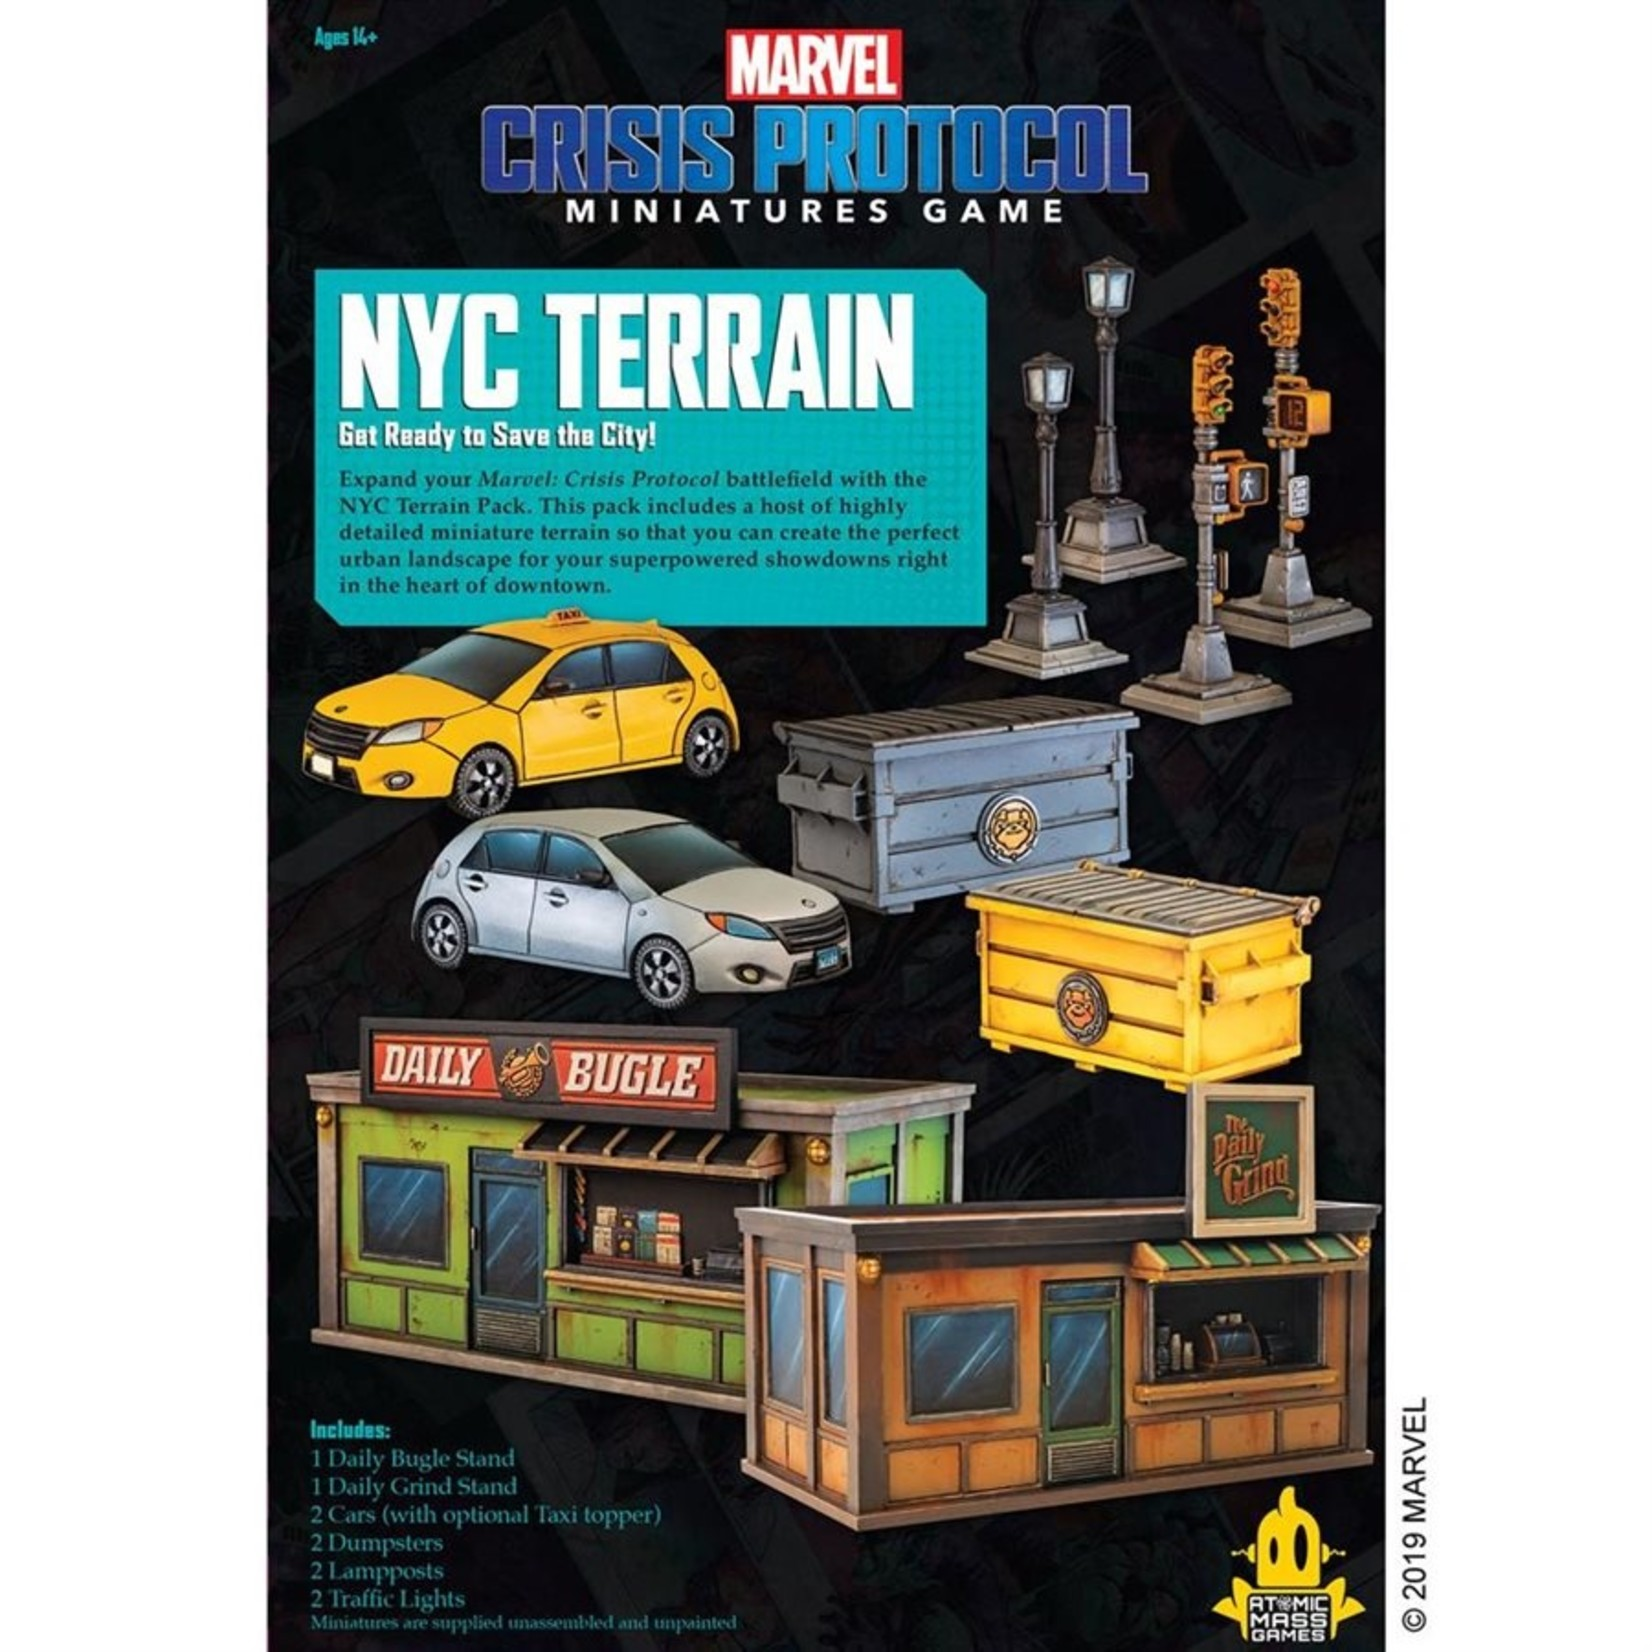 Atomic Mass Game Marvel Crisis Protocol - Nyc Terrain Pack